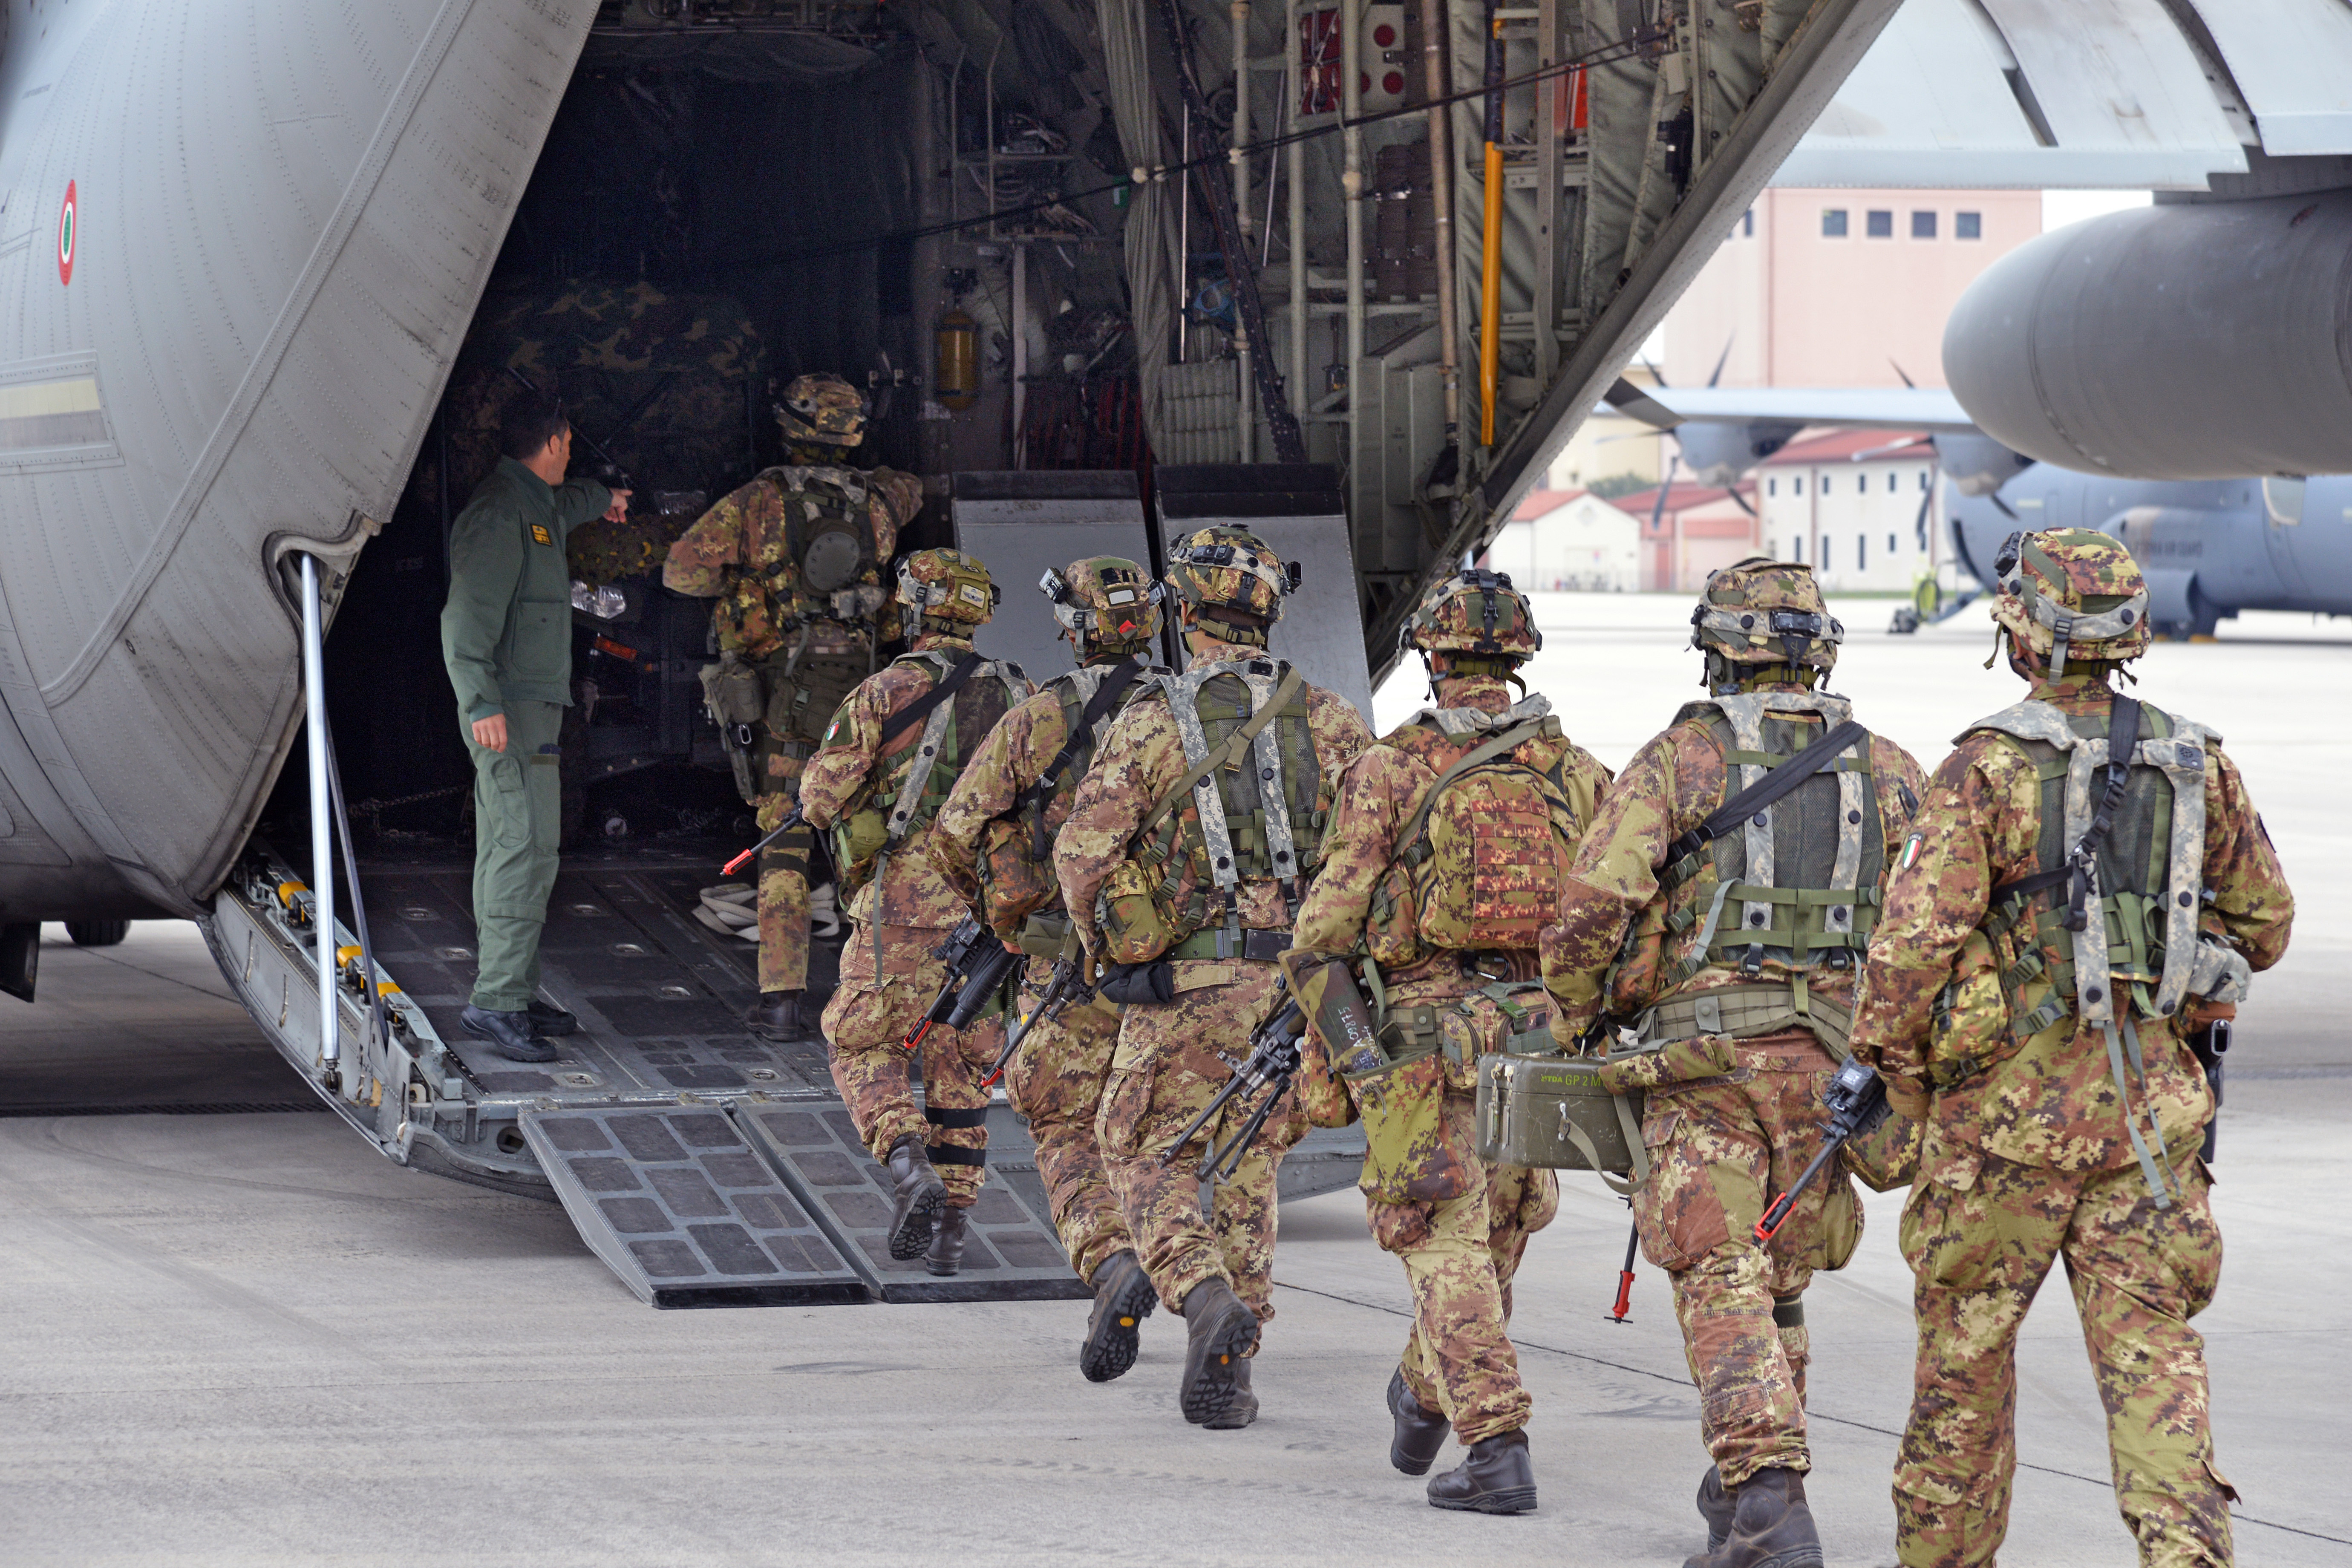 Paratroopers from the 185th Airborne Artillery Regiment, Folgore Brigade, board an Italian Air Force C-130 Hercules from 46th BA at Aviano Air Base, in Pordenone, Italy Oct. 11, 2017 during Exercise Swift Response 2017, Phase 2. Swift Response links to Exercise Saber Guardian 17, a U.S. Army Europe-led, multinational exercise that spans across Bulgaria, Hungary, and Romania with more than 25,000 service members from 22 allied and partner nations. (U.S. Army Photos by Visual Information Specialist Paolo Bovo/Released)